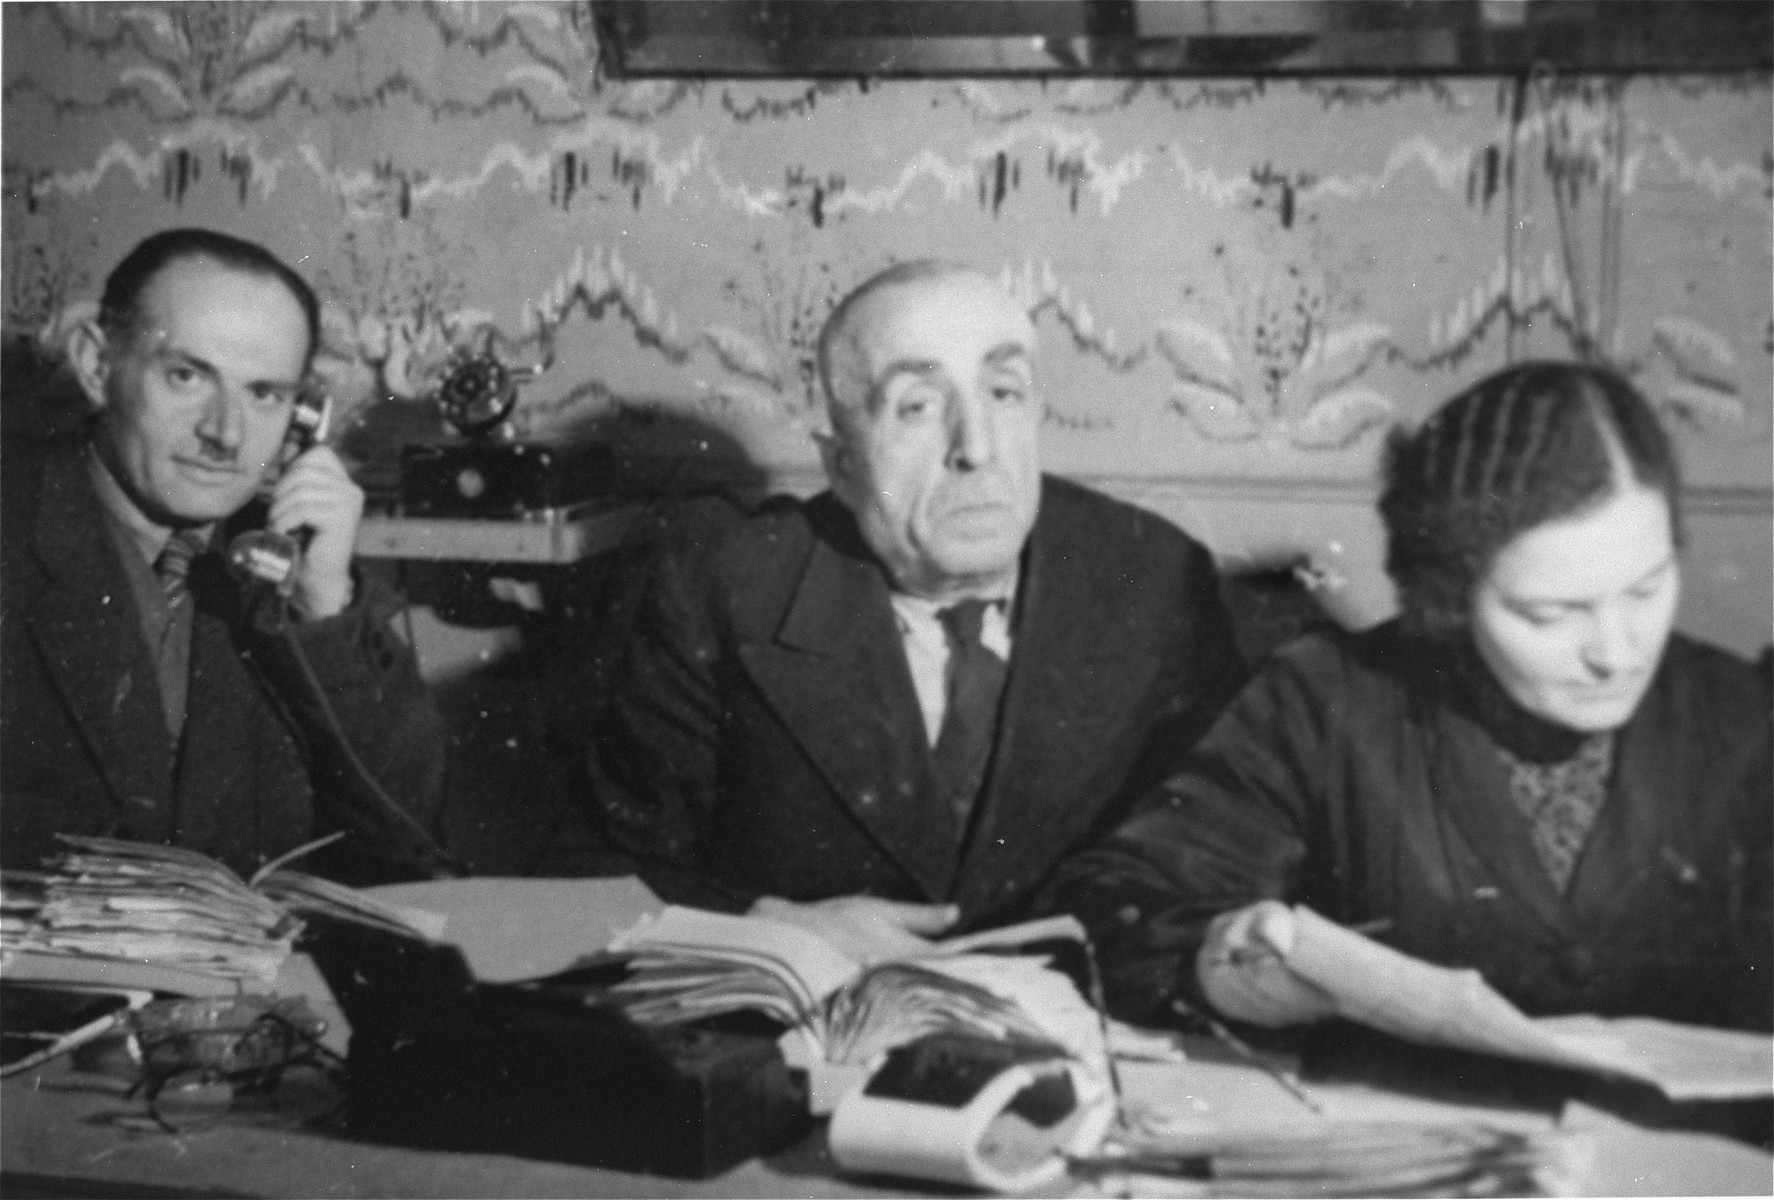 Three members of the ghetto administration sit at a table in the office of the Judenrat in the Kielce ghetto.  This photo was one the images included in an official album prepared by the Judenrat of the Kielce ghetto in 1942.